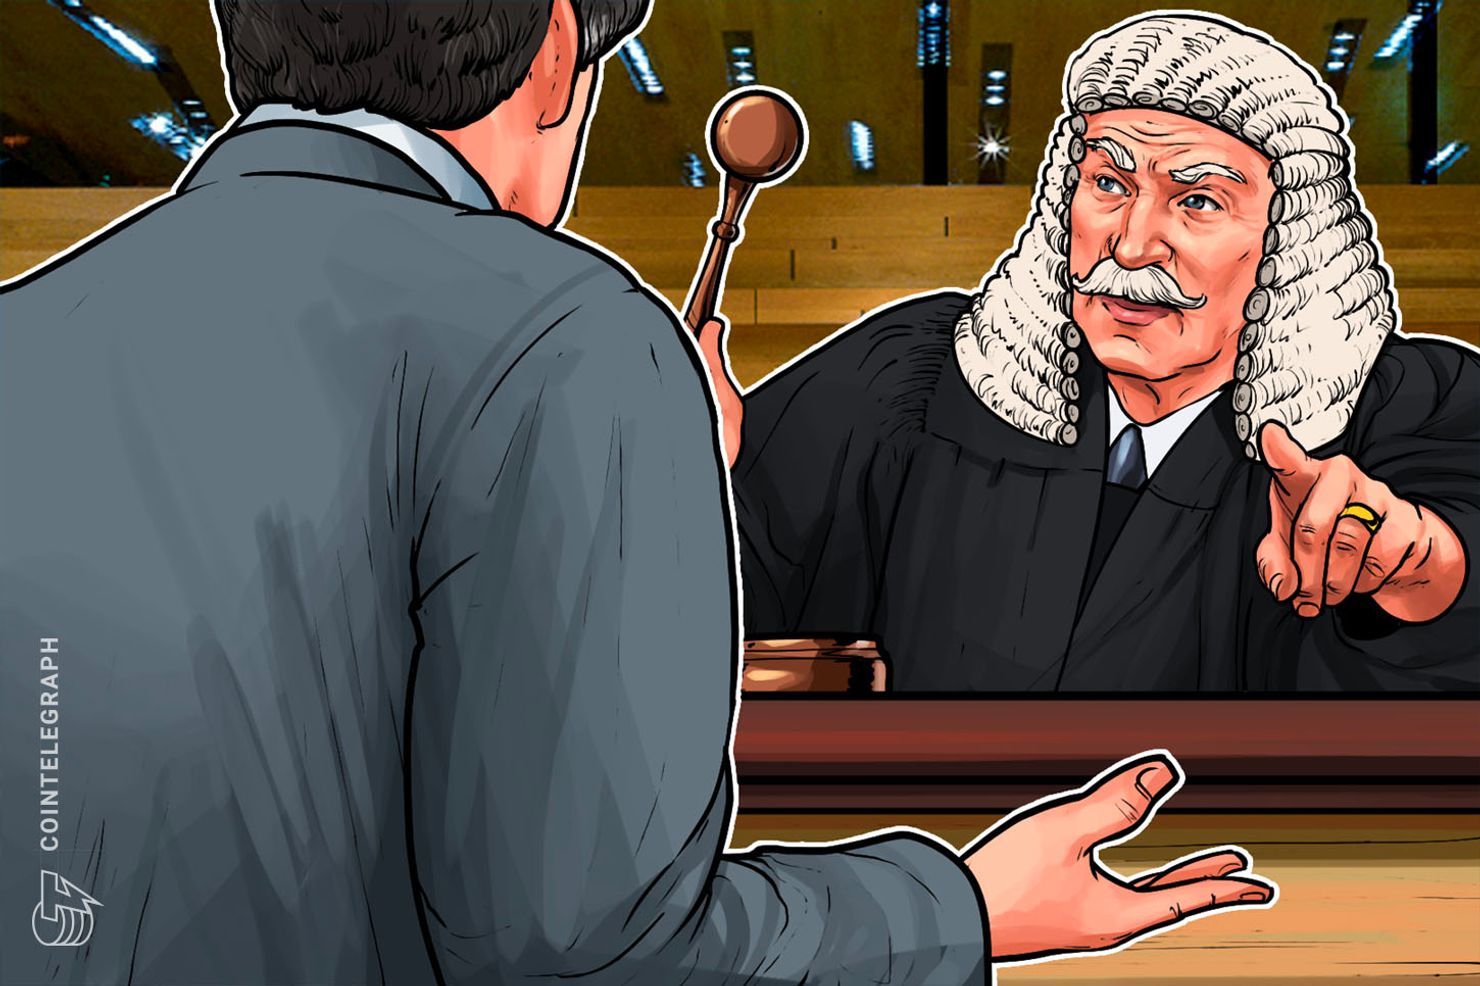 Bitcoin Pioneer Jeff Garzik Subpoenaed in $4 Bln Lawsuit Against Craig Wright